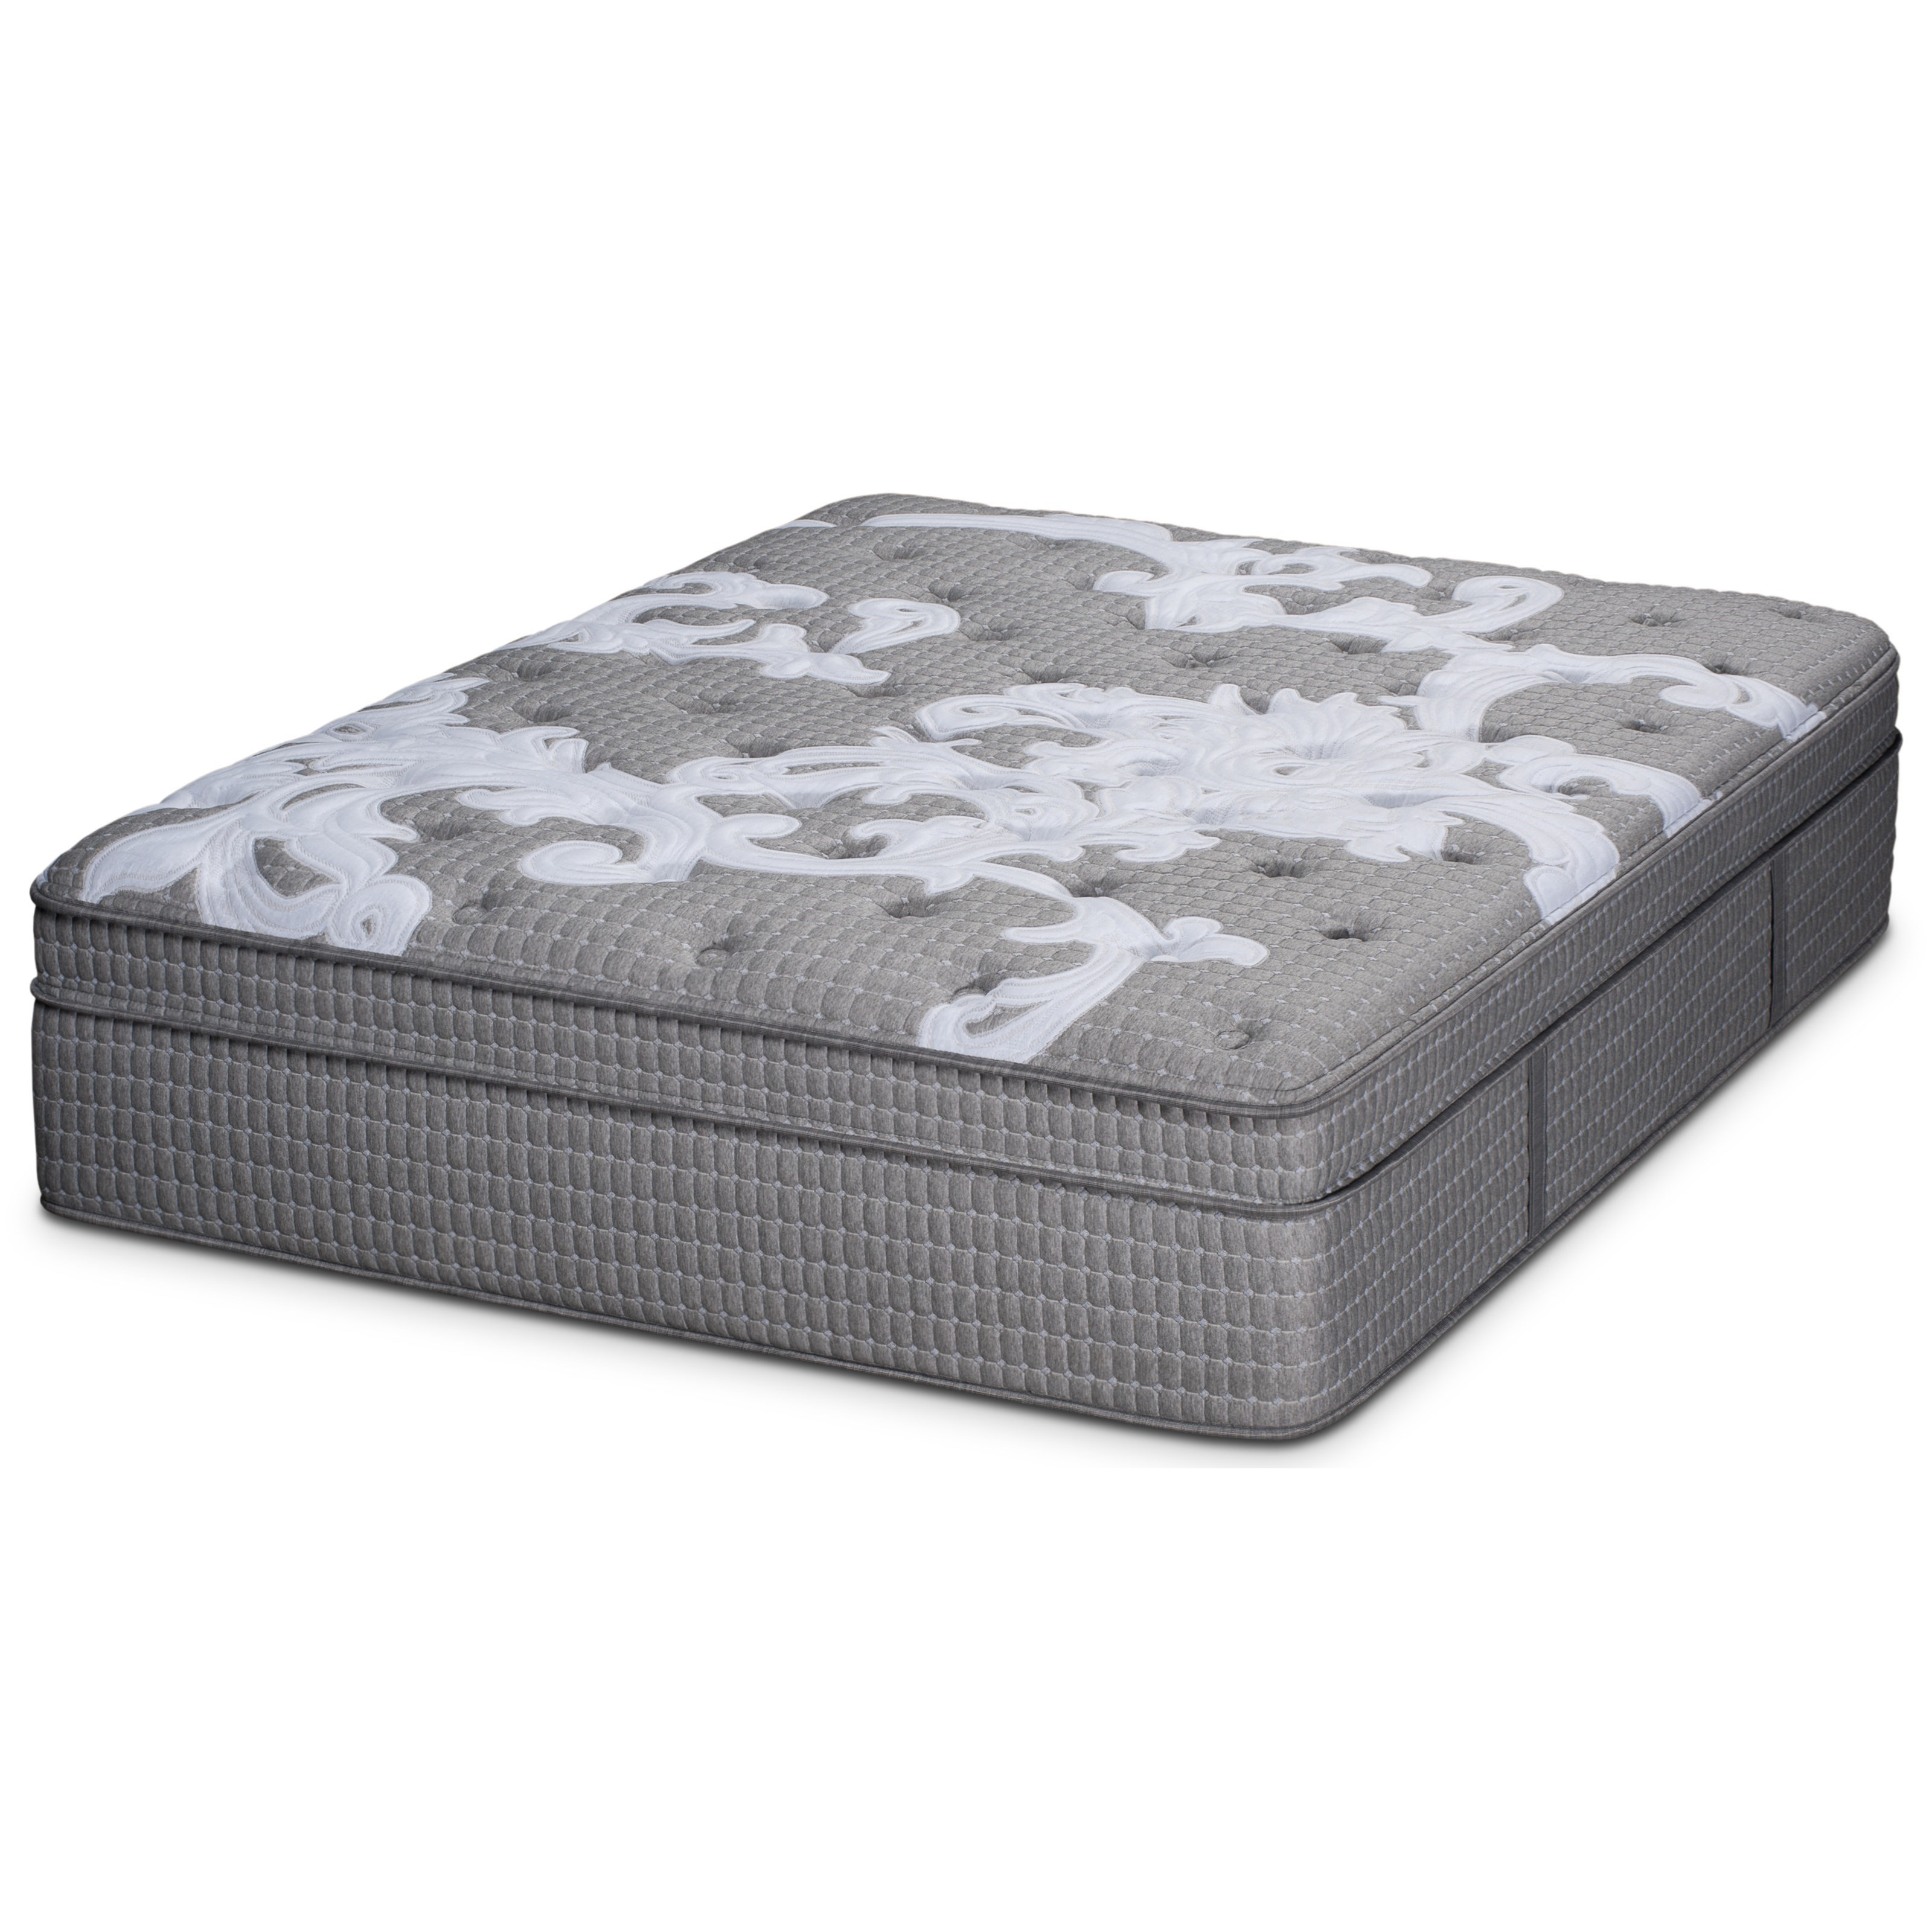 Sunlight ET Queen Pocketed Coil Mattress Set by Restonic at Wilcox Furniture